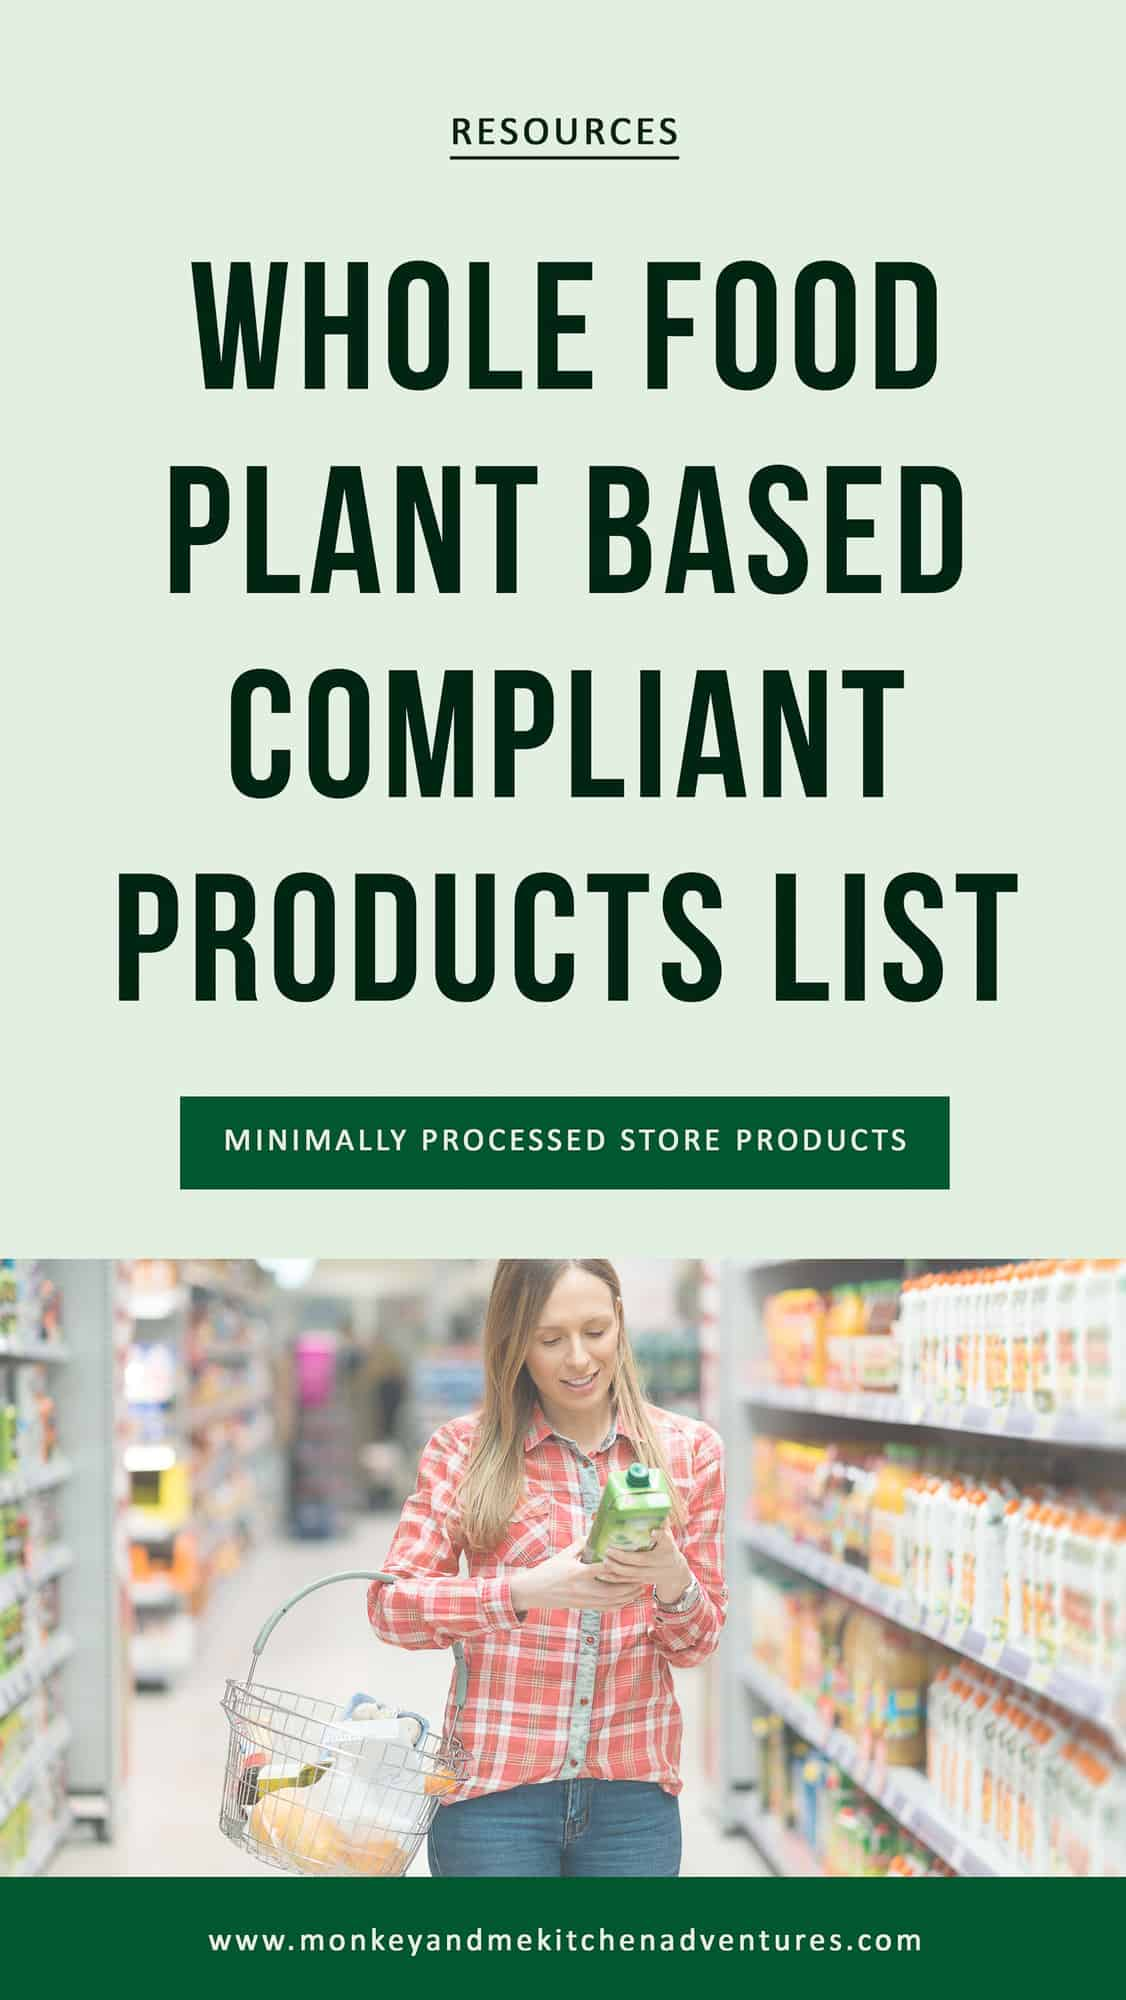 Whole Food Plant Based Compliant Products List